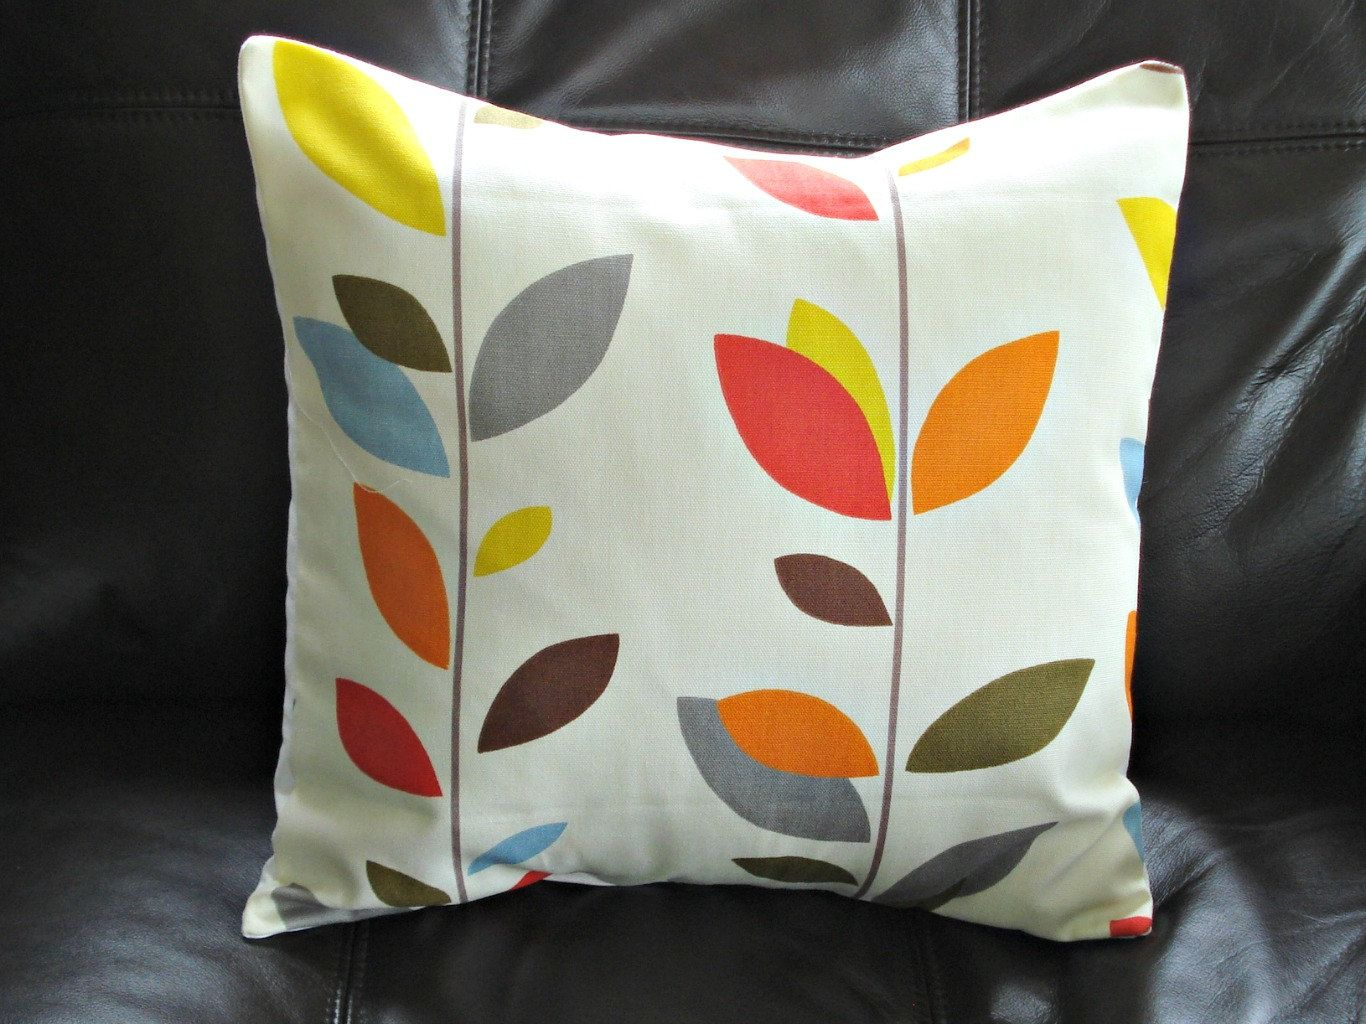 Decorative pillows with blue brown and yellow - Pillow Orange Blue Olive Red Yellow Grey Gray Brown 16 Inch Leaf Design Cushion Shams Fabric